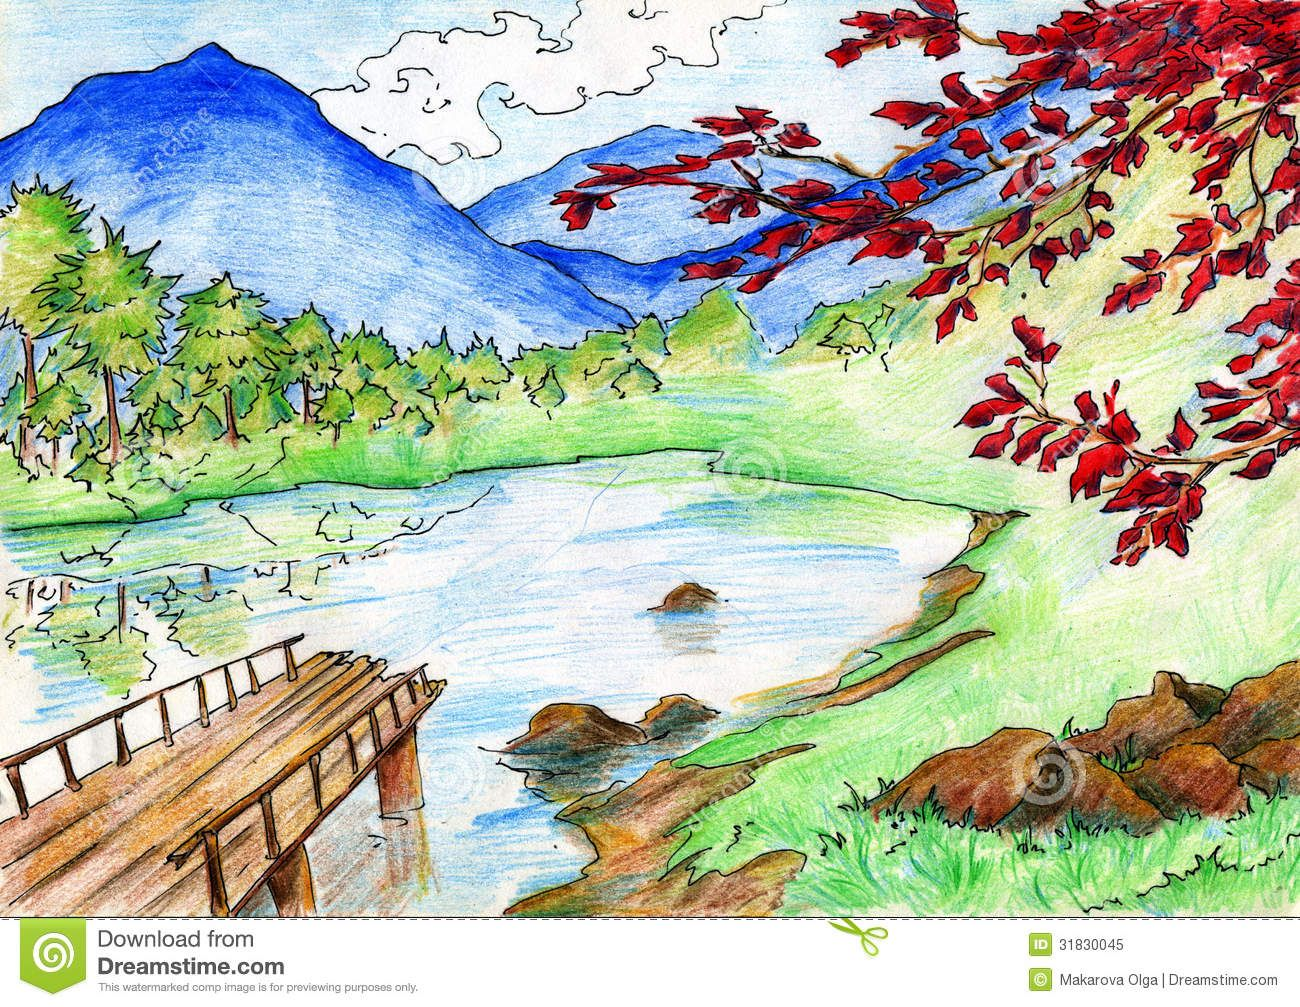 Color pencil sketches landscape drawn with colored pencils